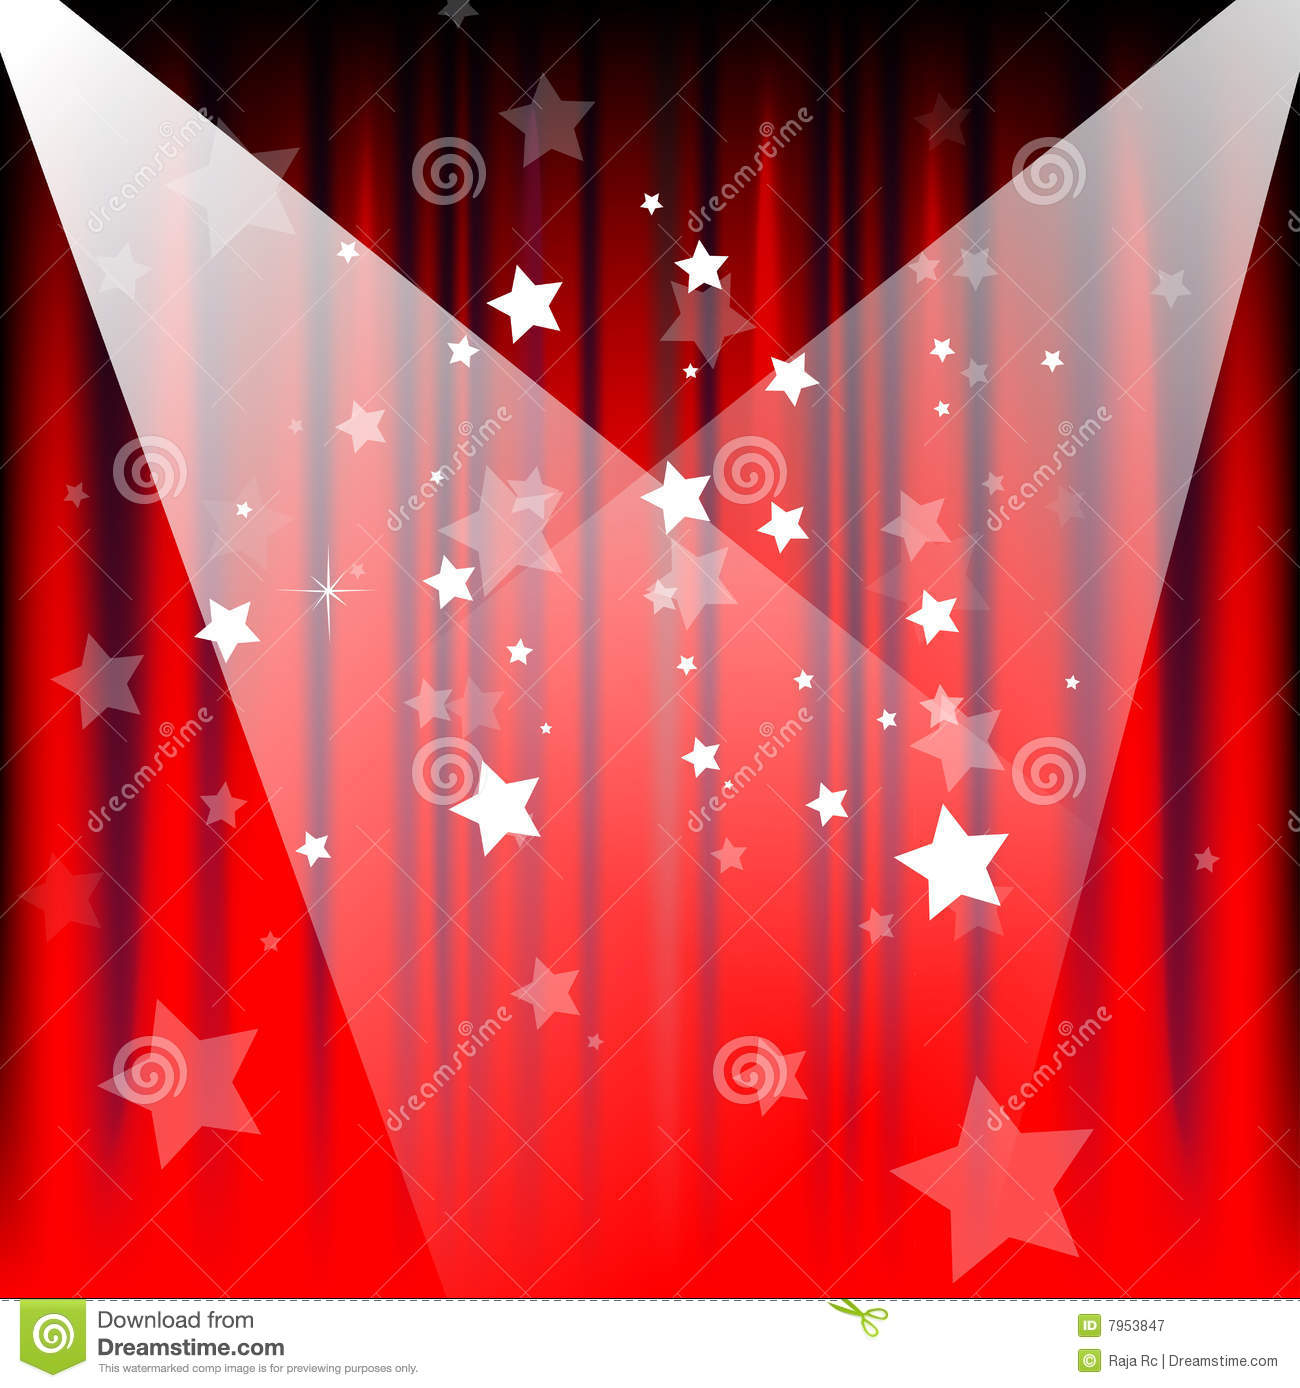 Stage Curtains Royalty Free Stock Photography  Image 7953847